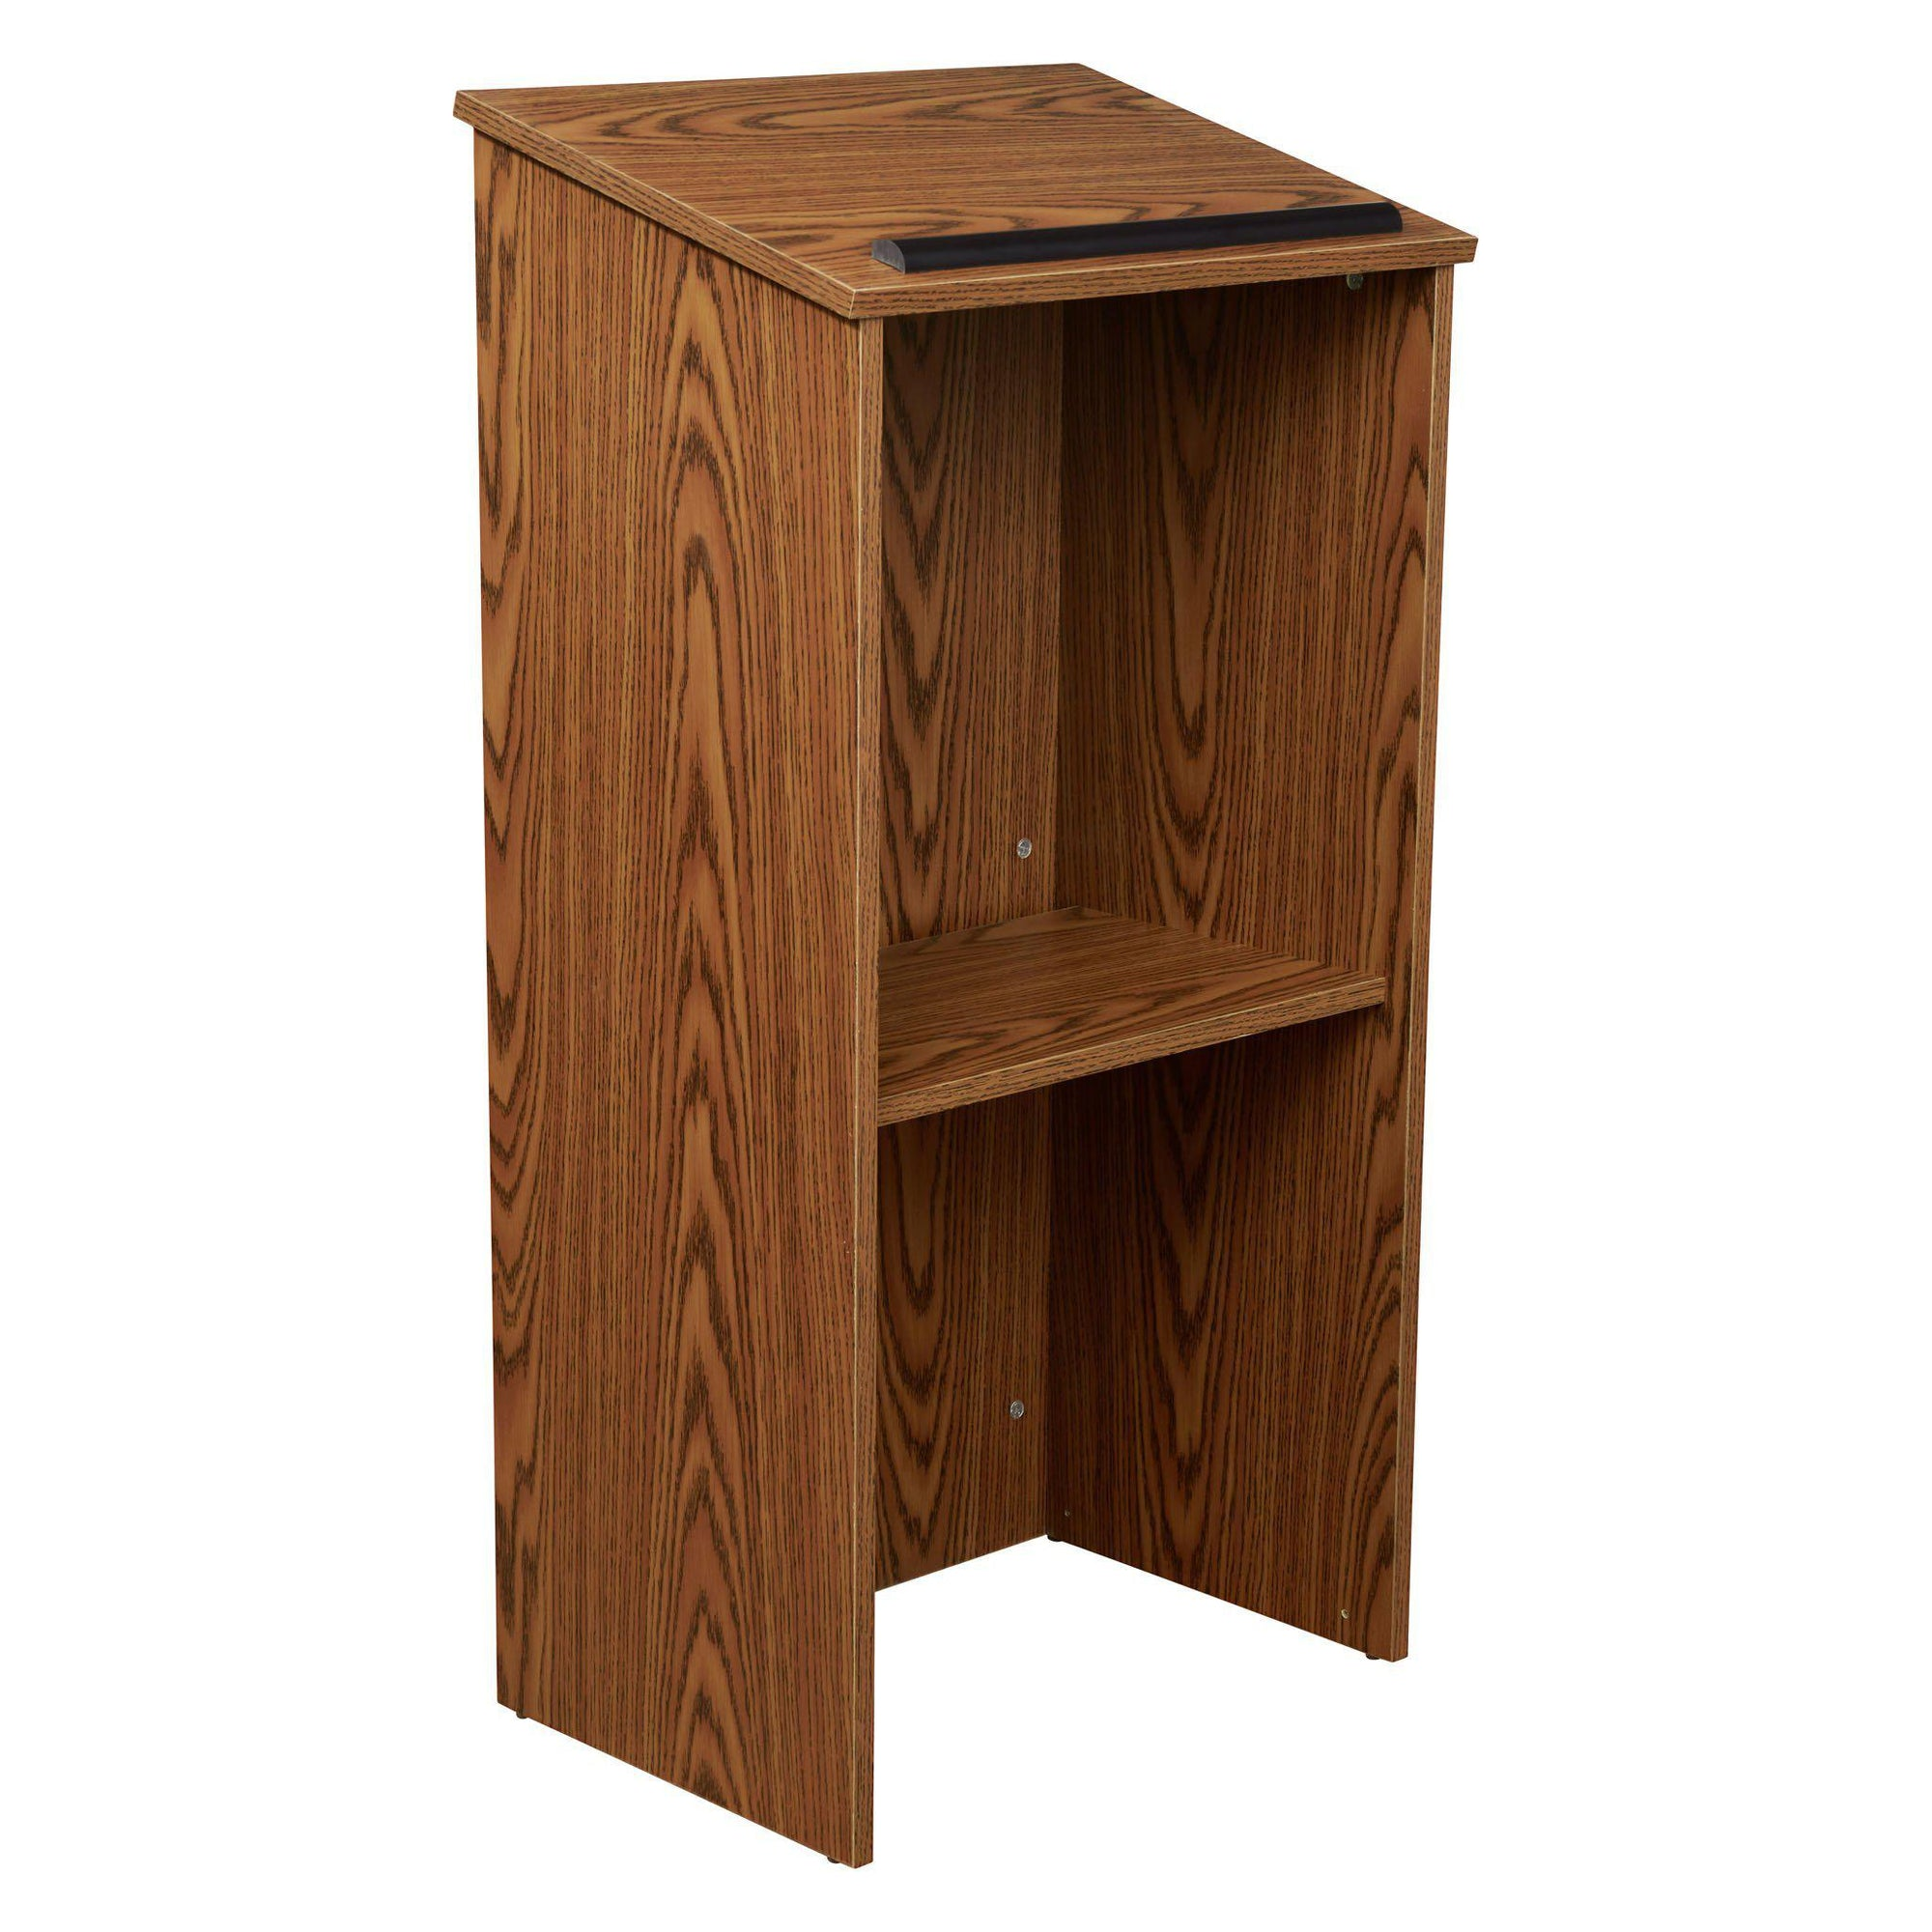 Oklahoma Sound® Full Floor Lectern